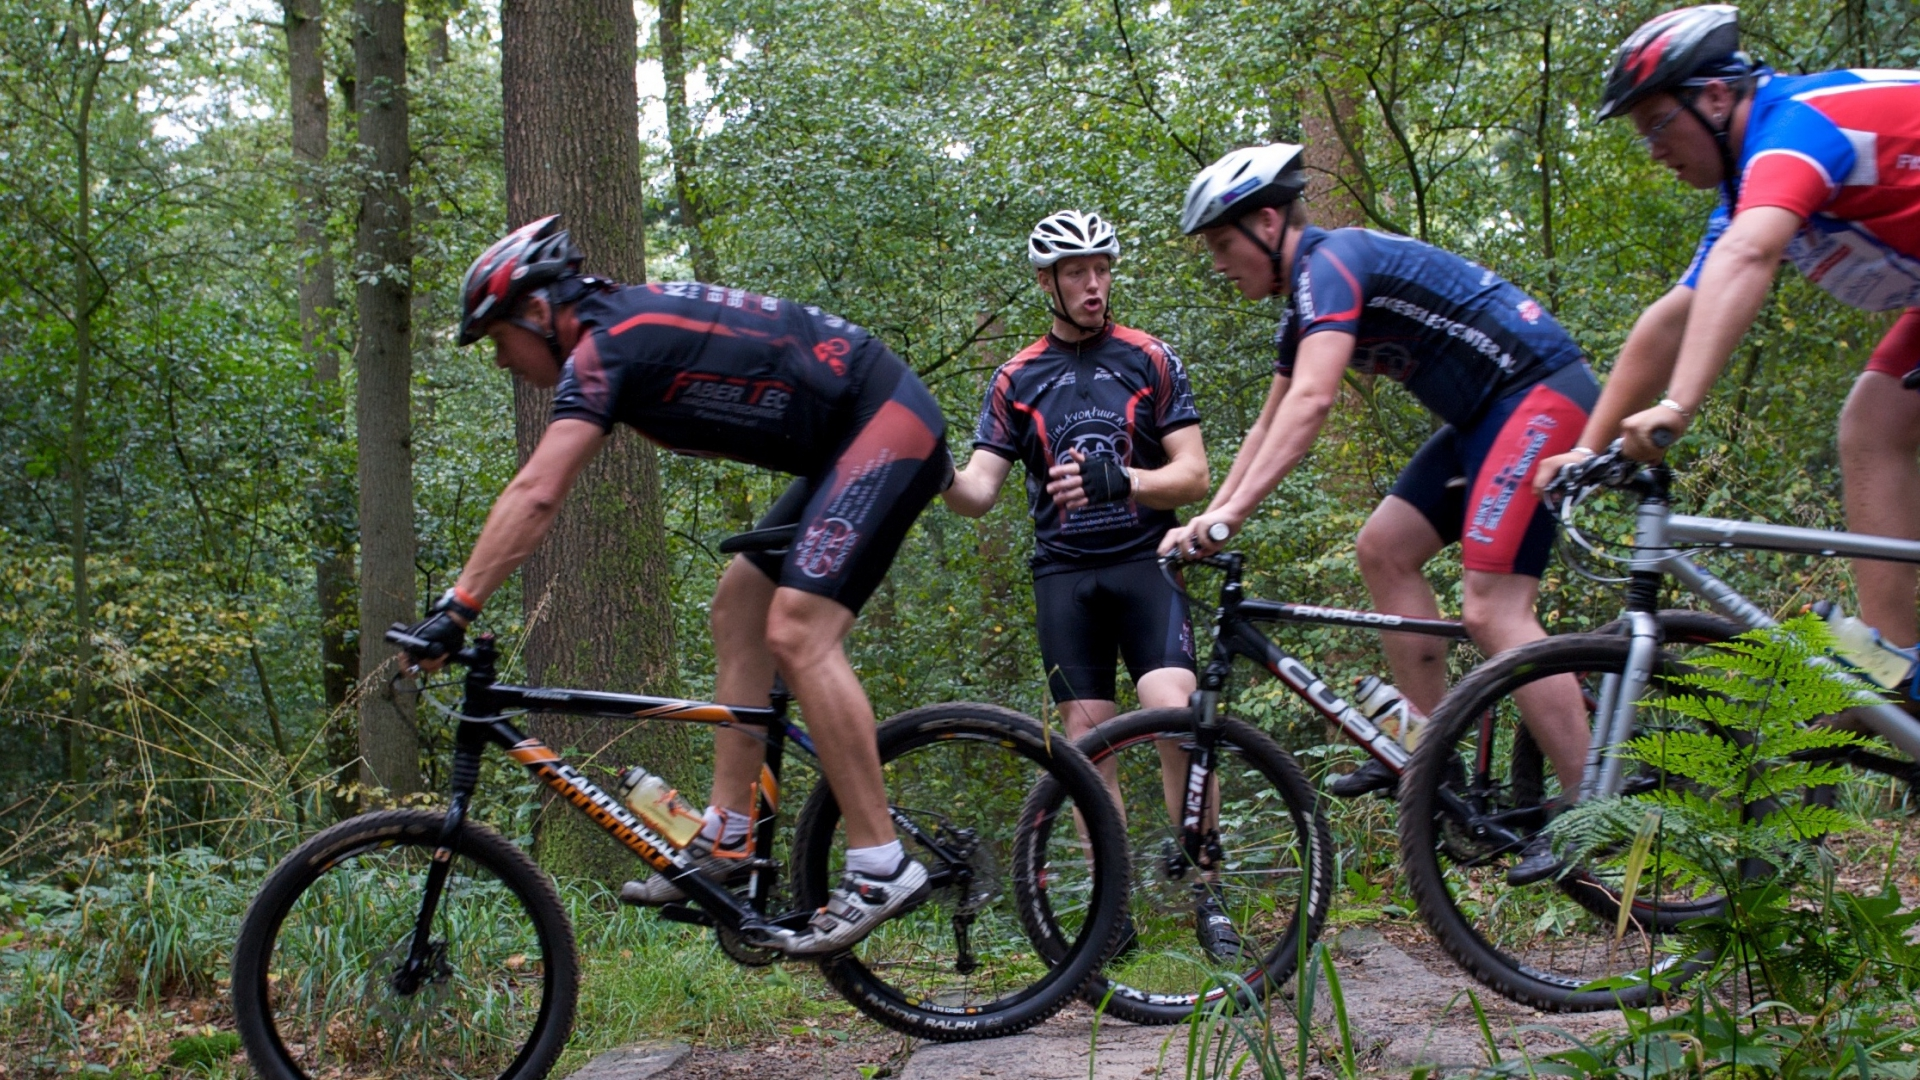 Mountainbike Clinic Event 2020 (datum nog niet bekend i.v.m. coronavirus)